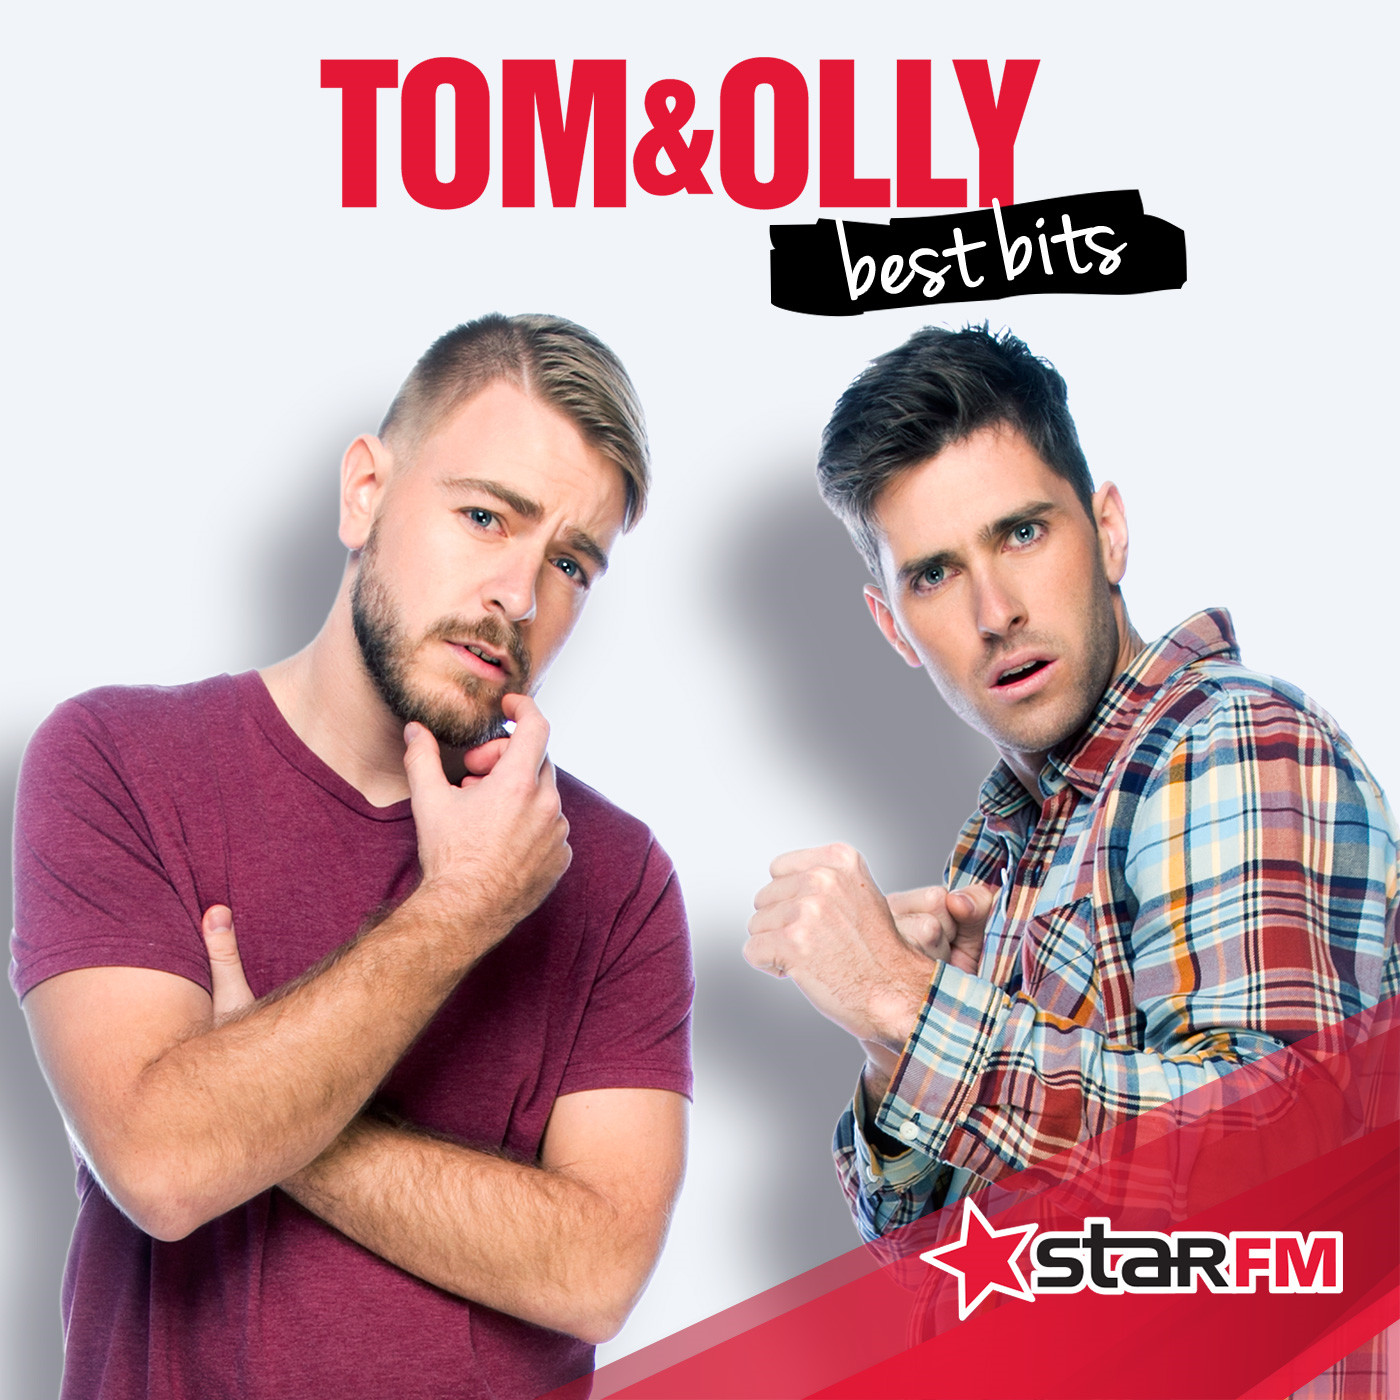 Tom & Olly's Best Bits